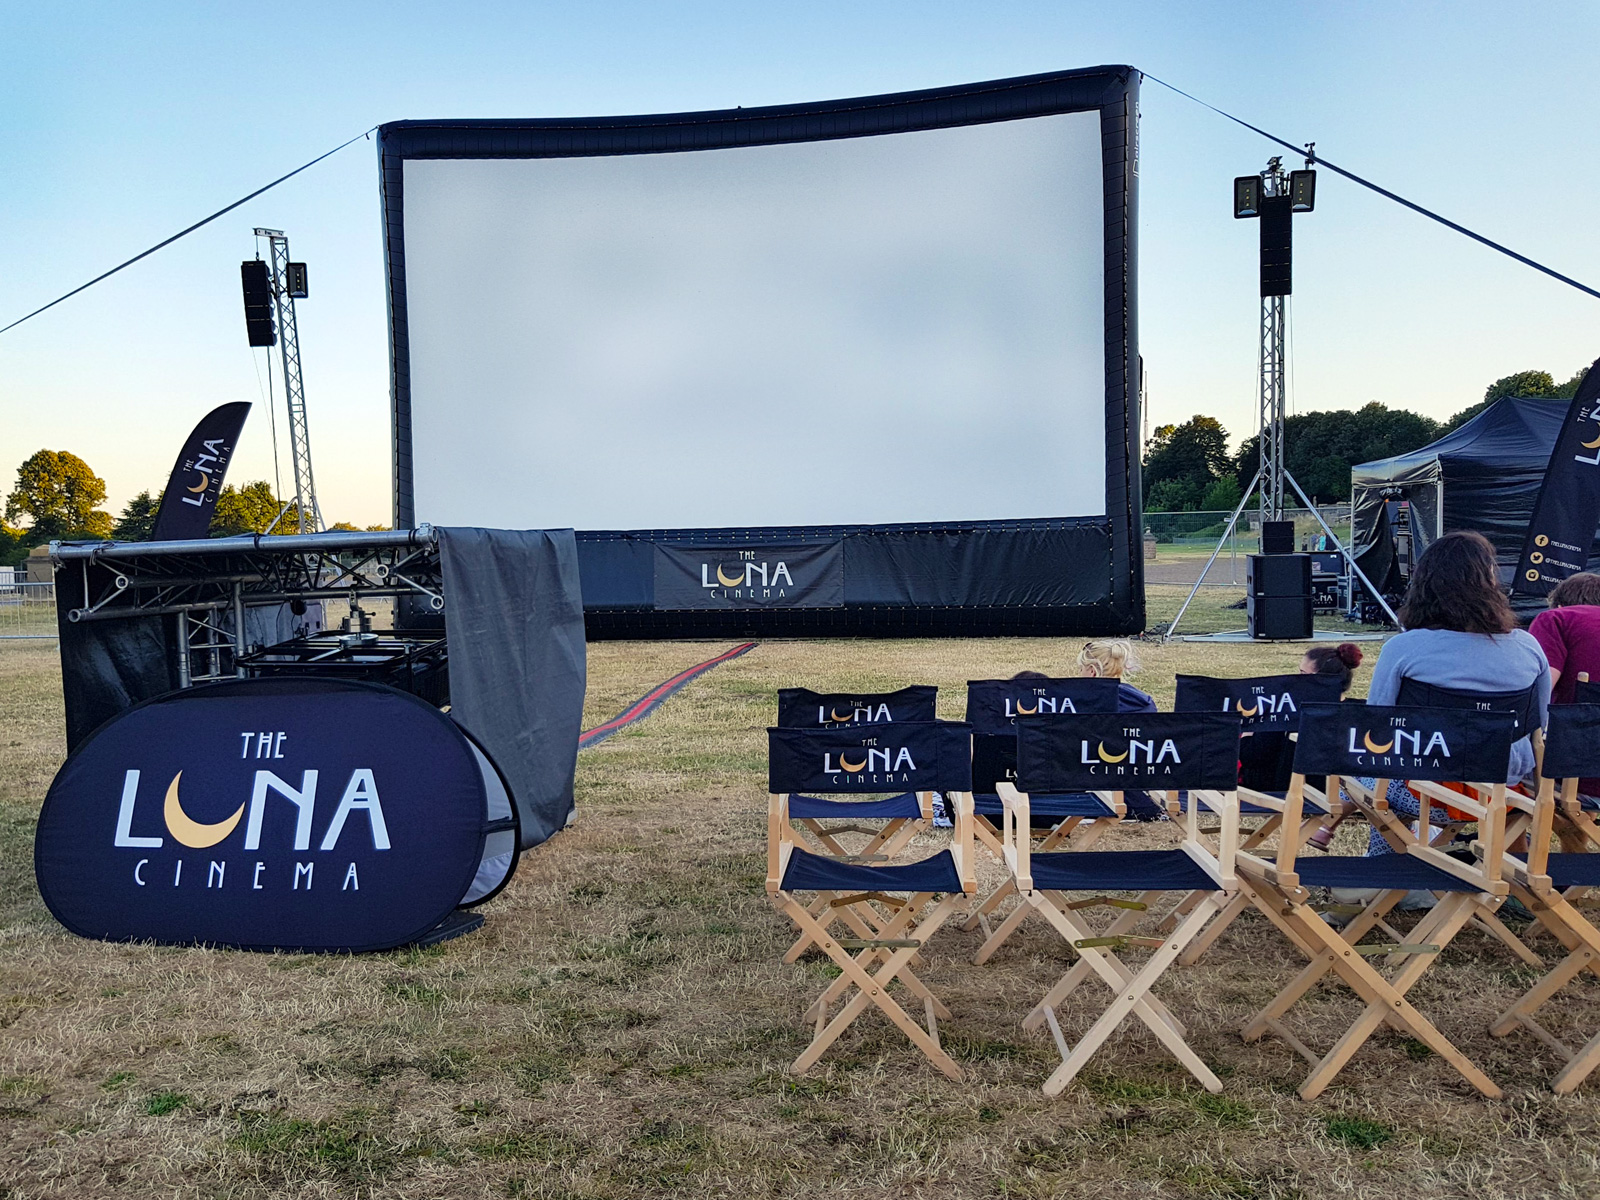 Luna Cinema at Crystal Palace in London, UK